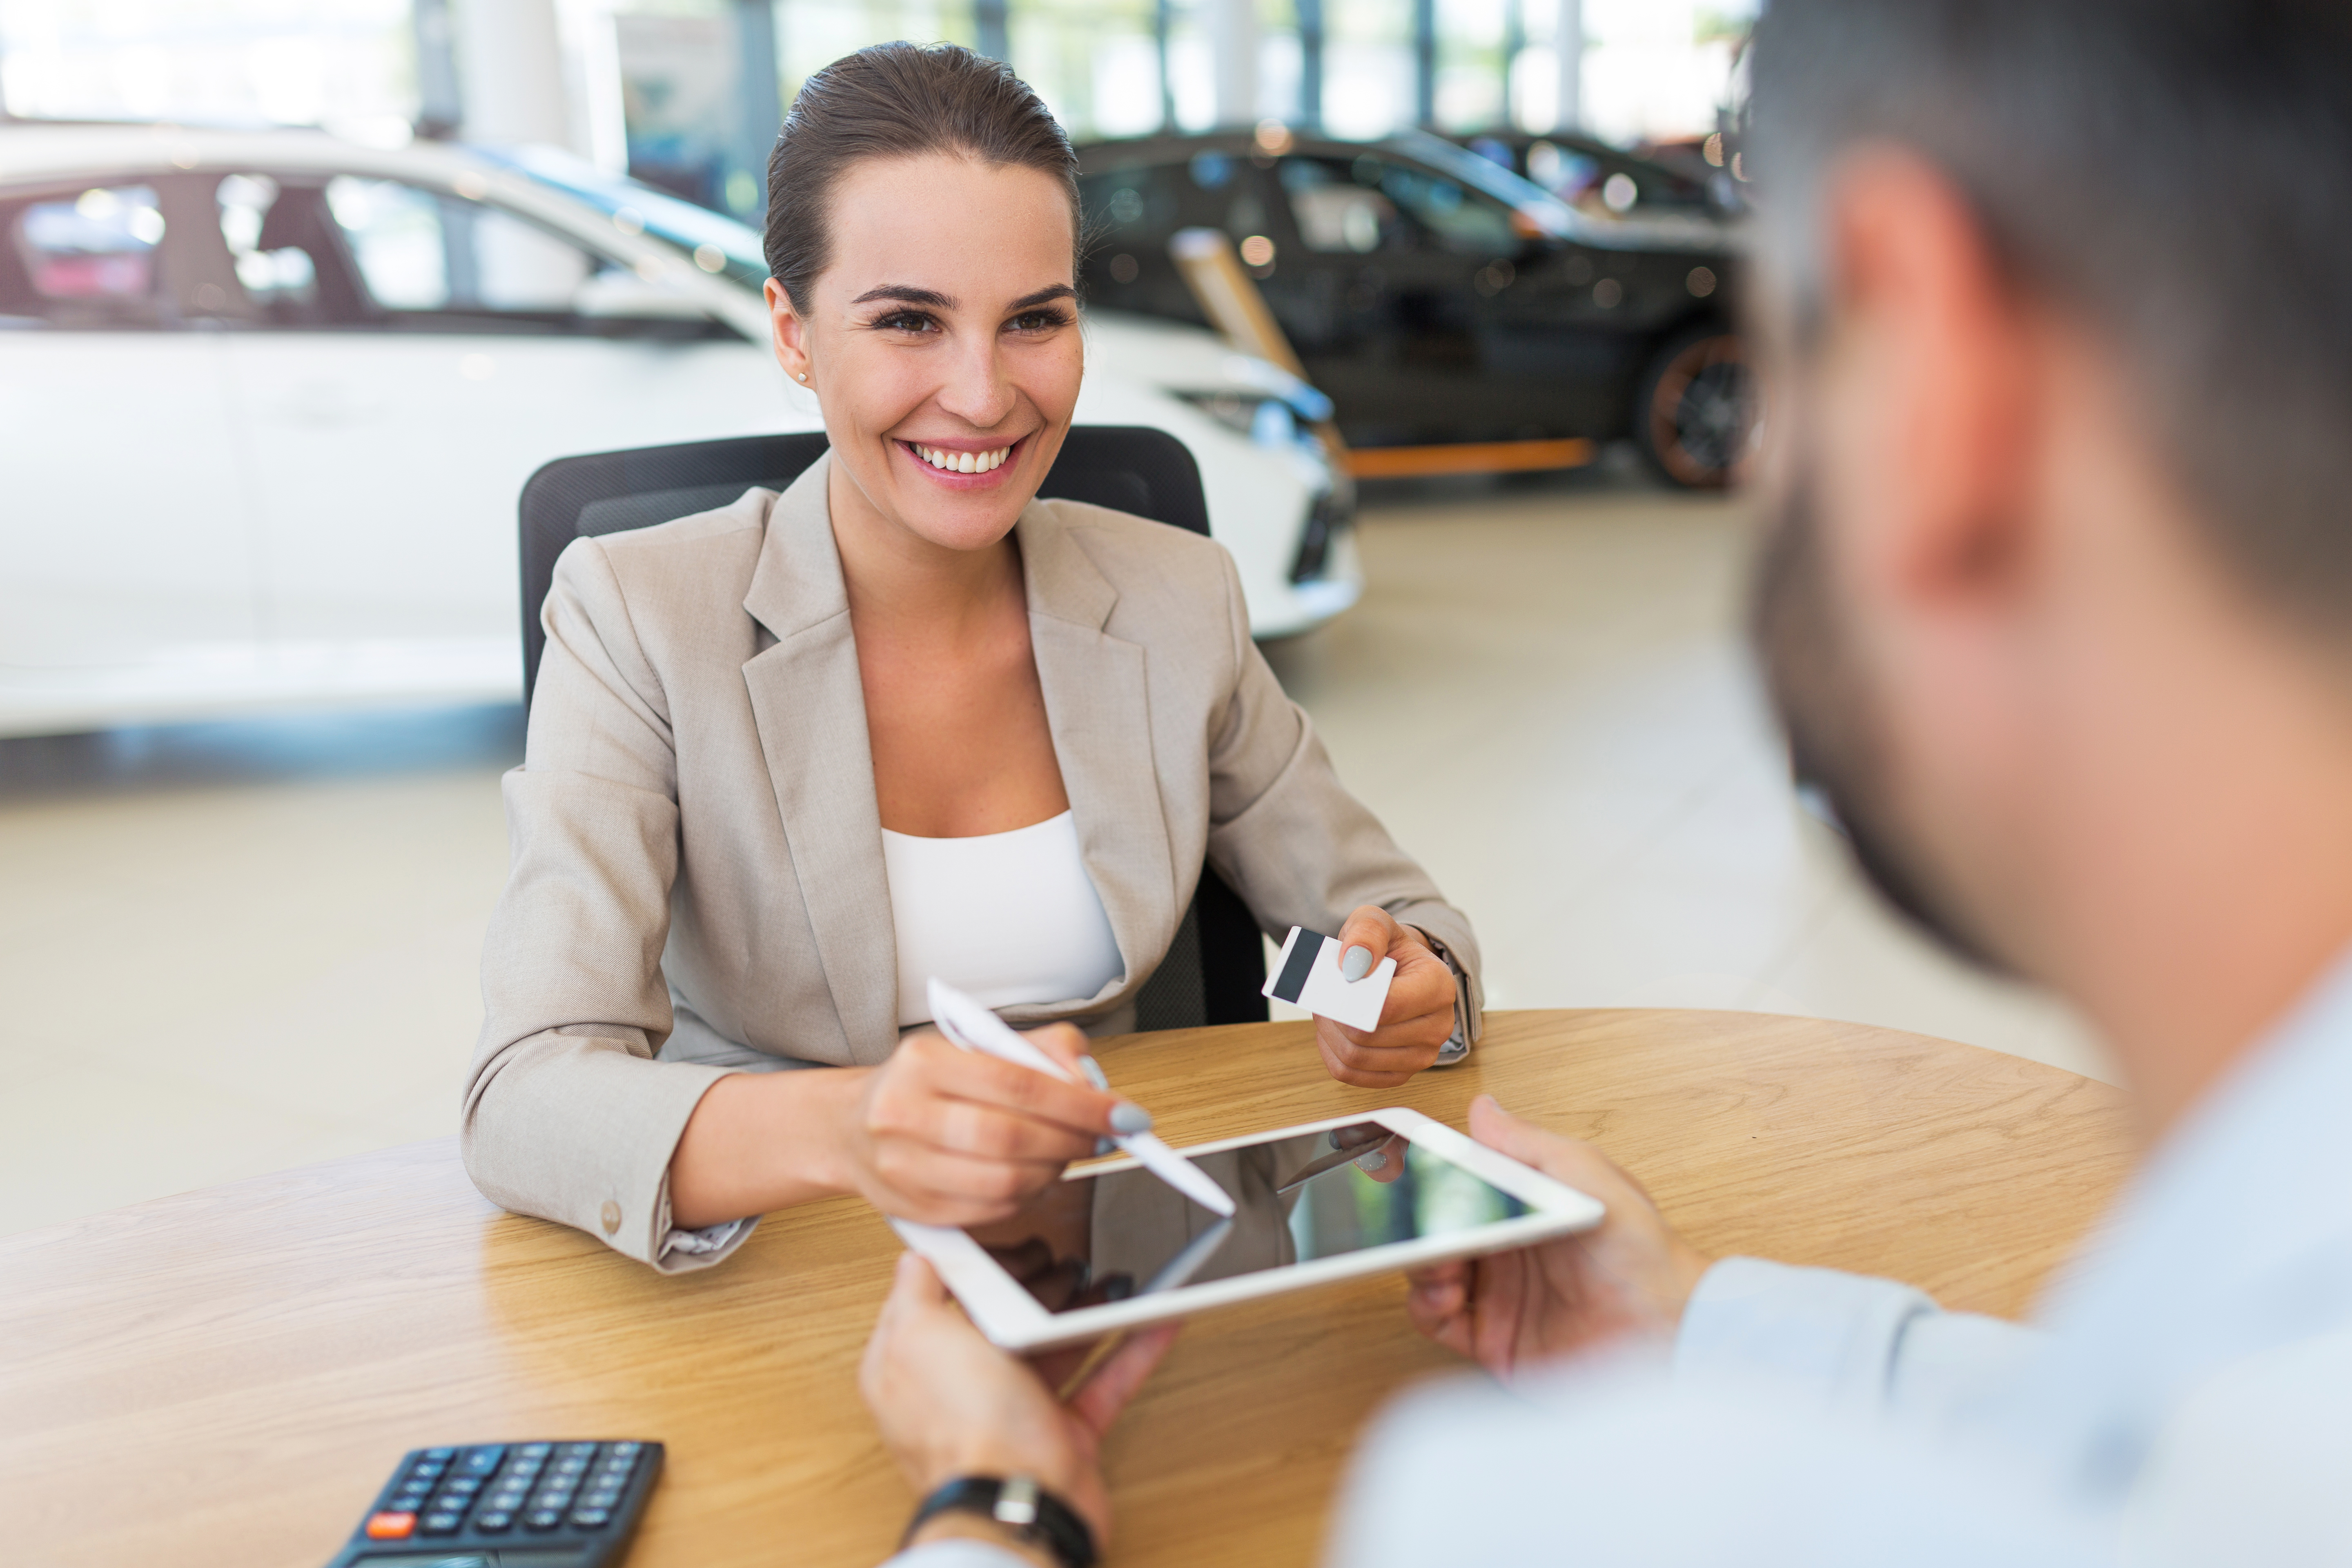 5 Steps to Build Your Dealership's Brand Promise